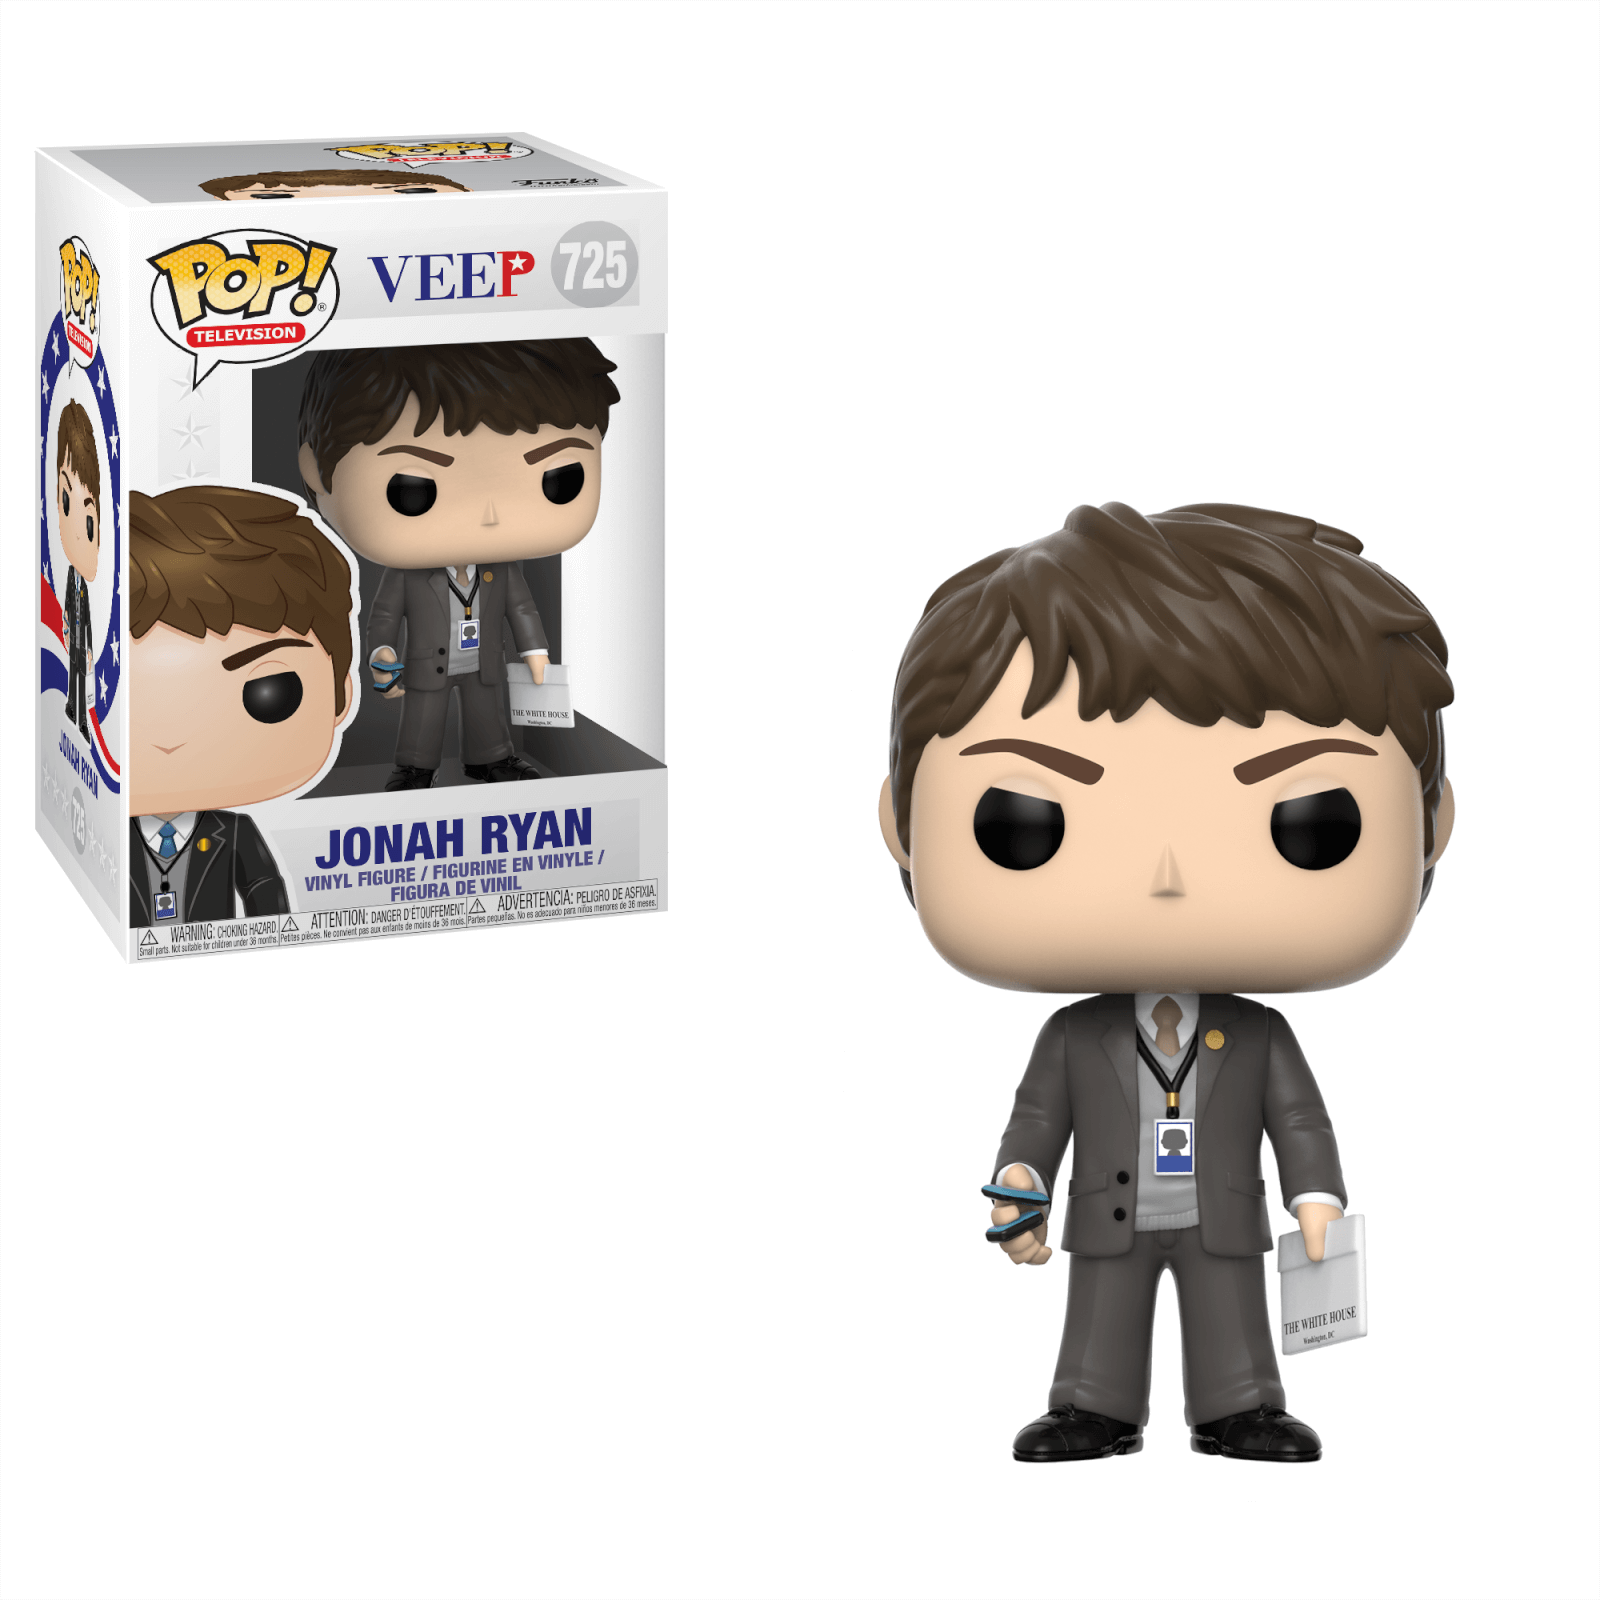 Veep Jonah Ryan Pop! Vinyl Figure